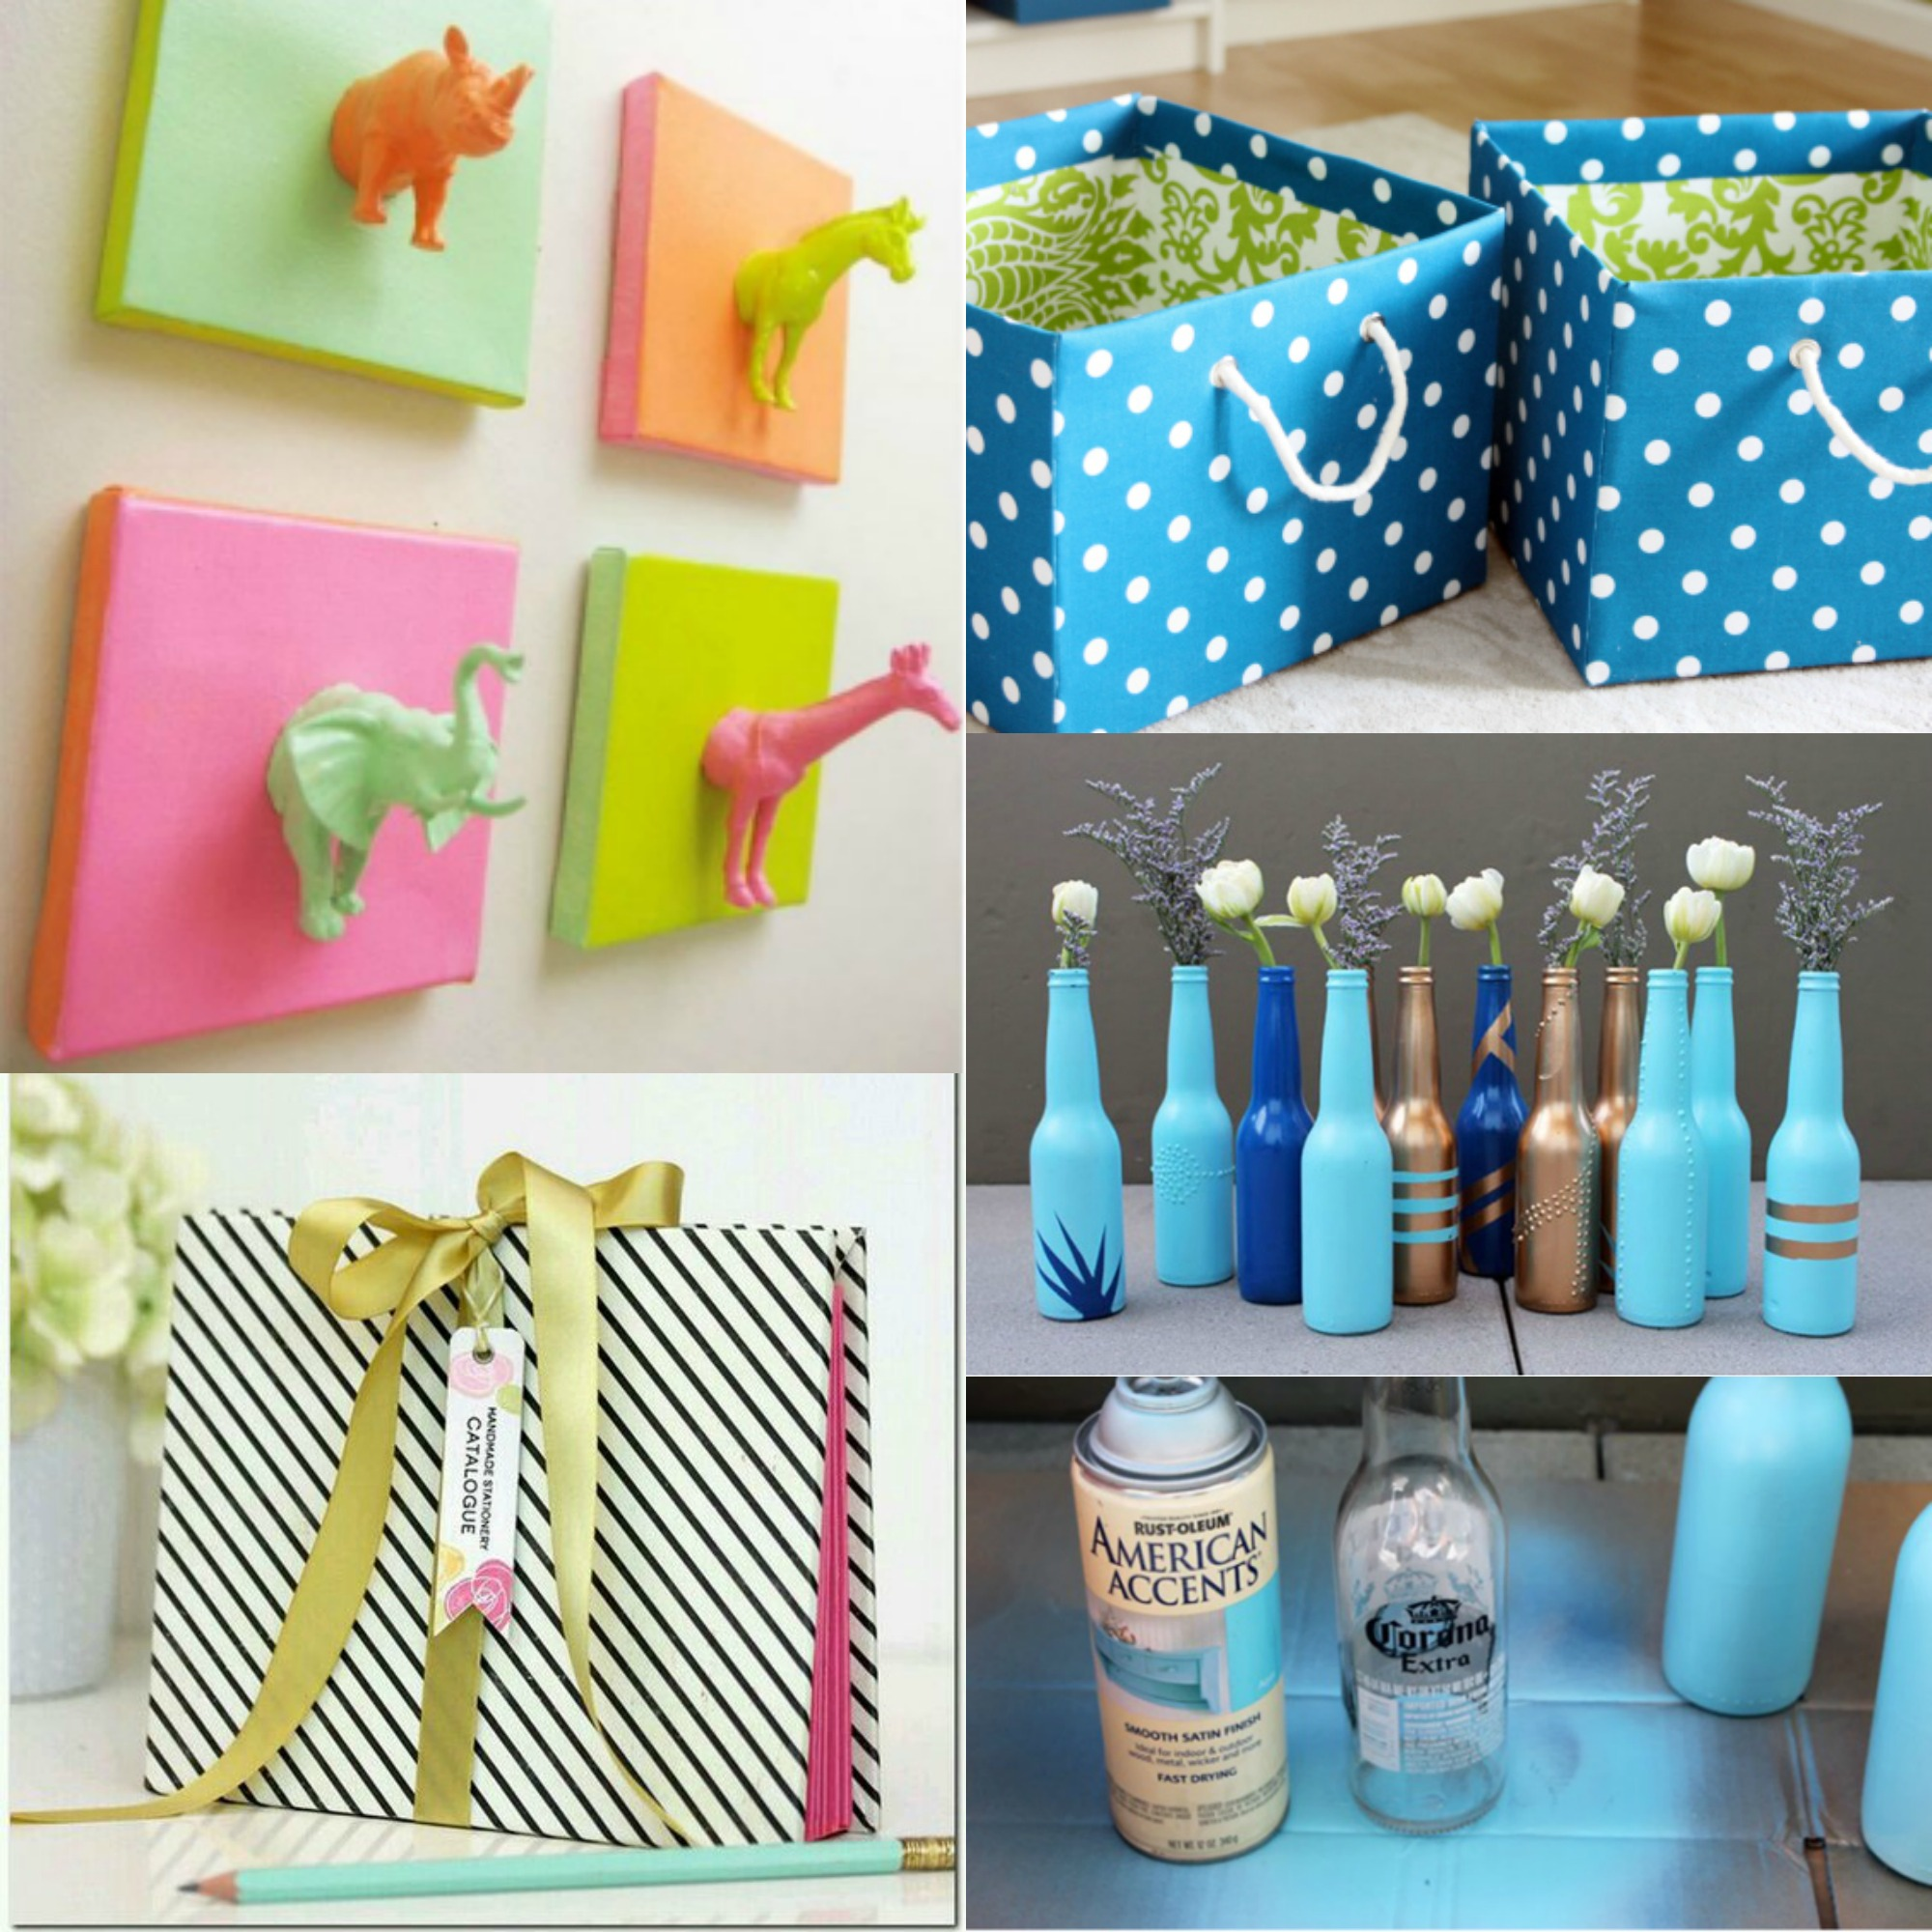 11 Awesome DIY Crafts You Must Try